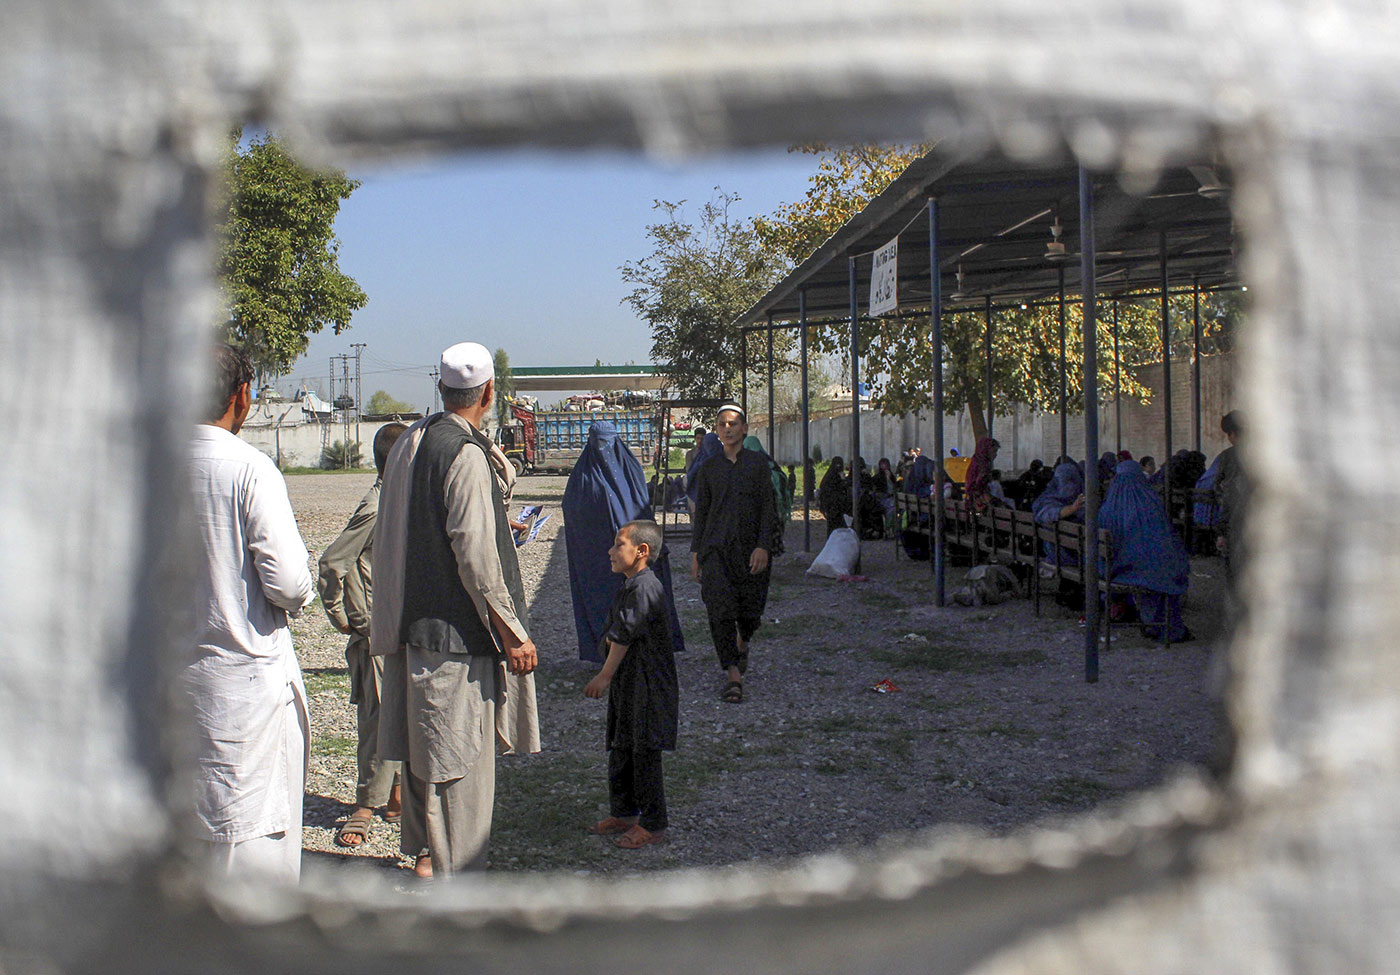 Afghan refugees near the UN High Commissioner for Refugees' office in Peshawar, Pakistan